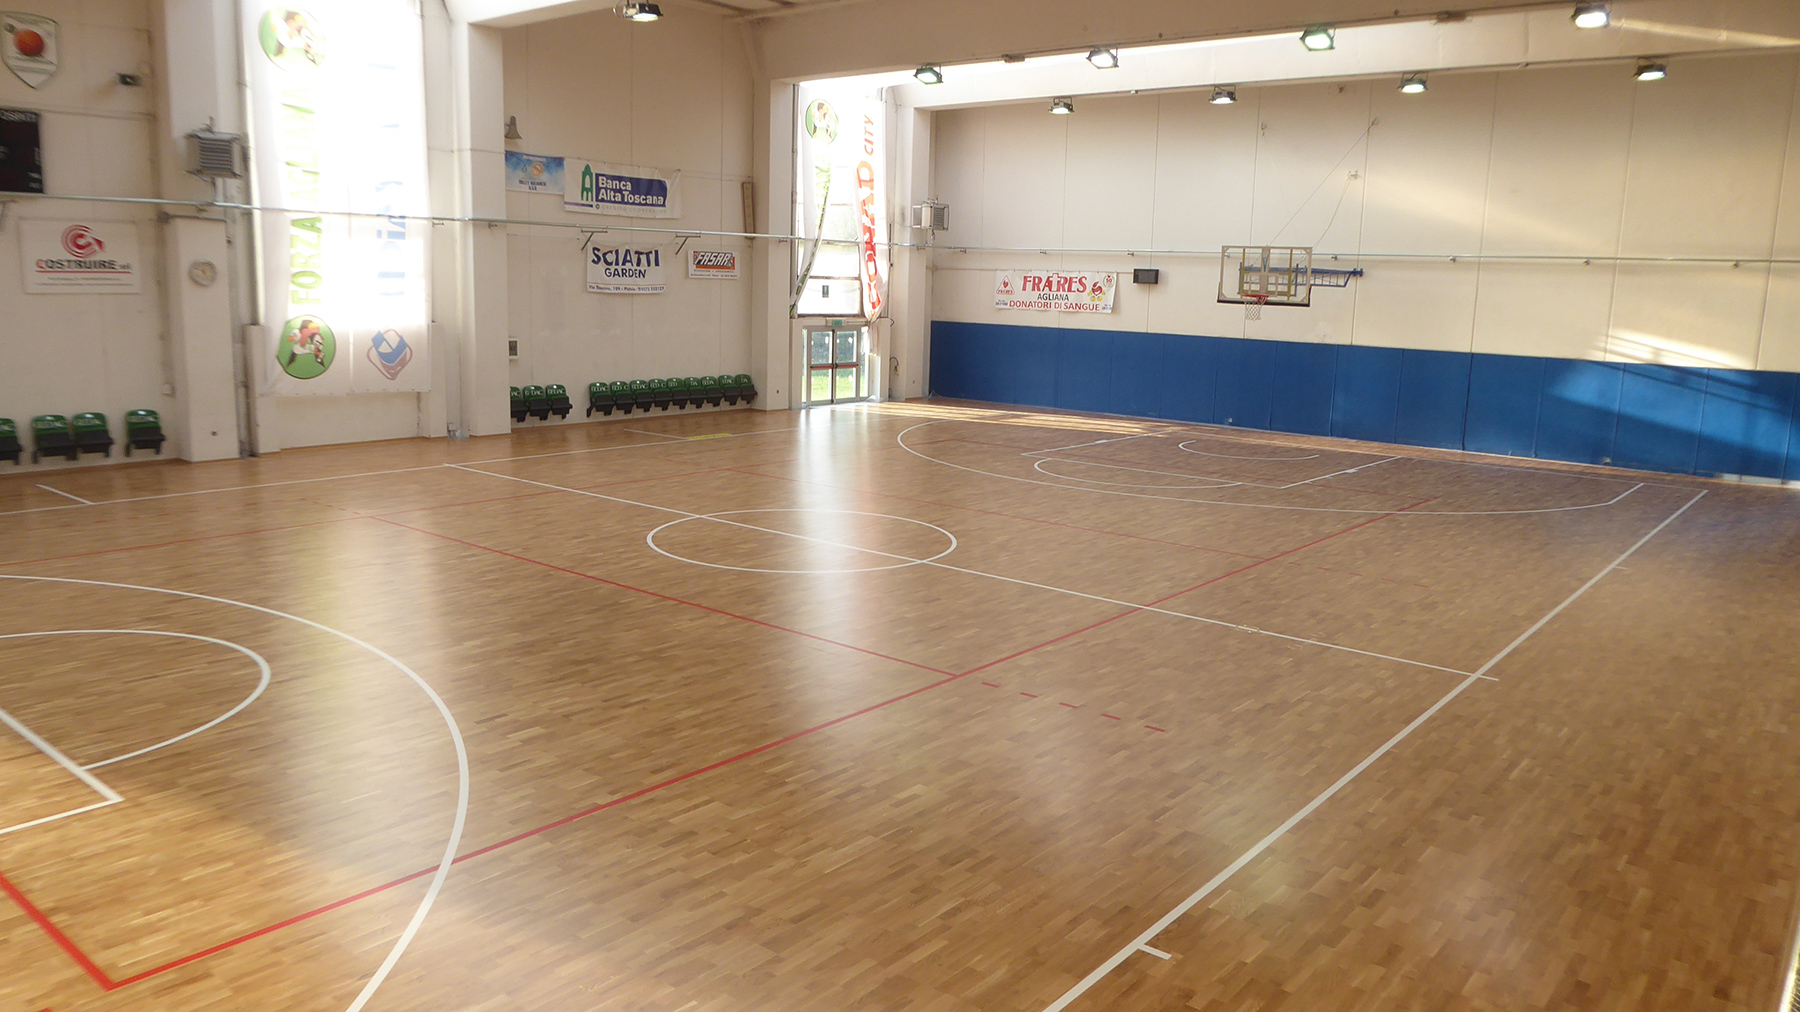 The new FIBA approved flooring for the Agliana Basket